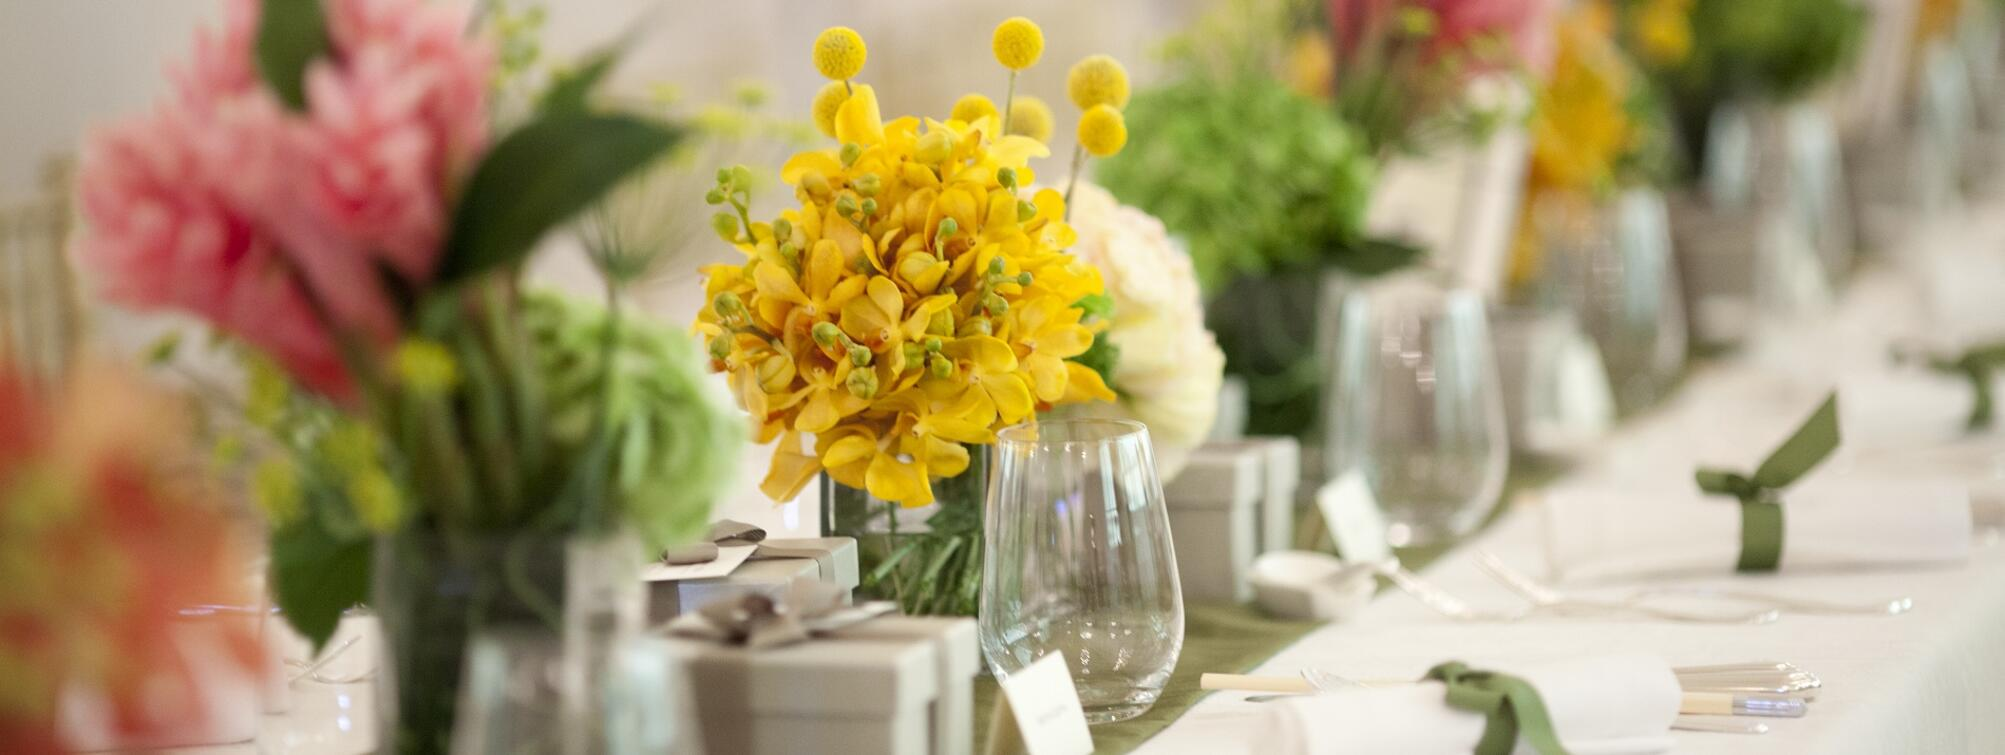 A table arranged for an event with flowers